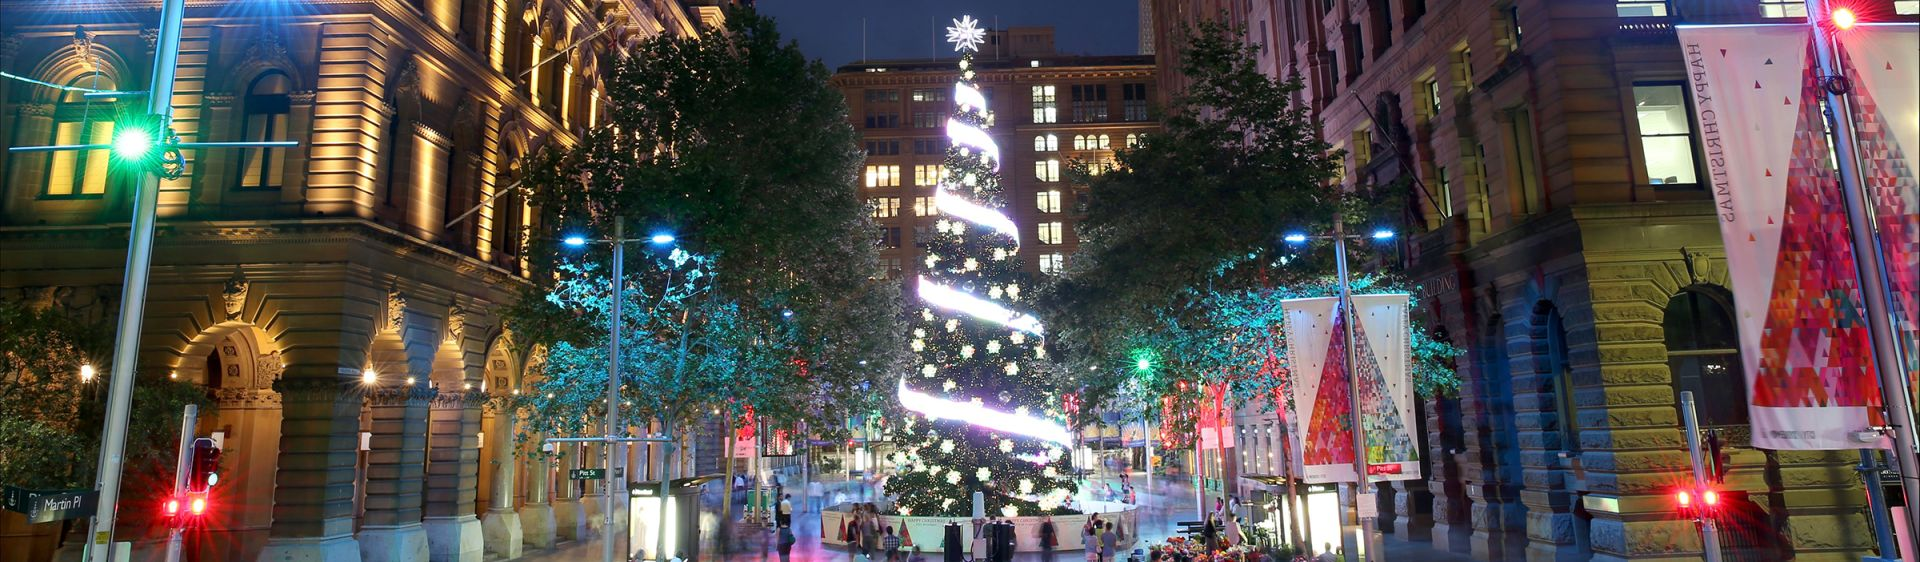 The Christmas tree twinkling at night in Martin Place, Sydney